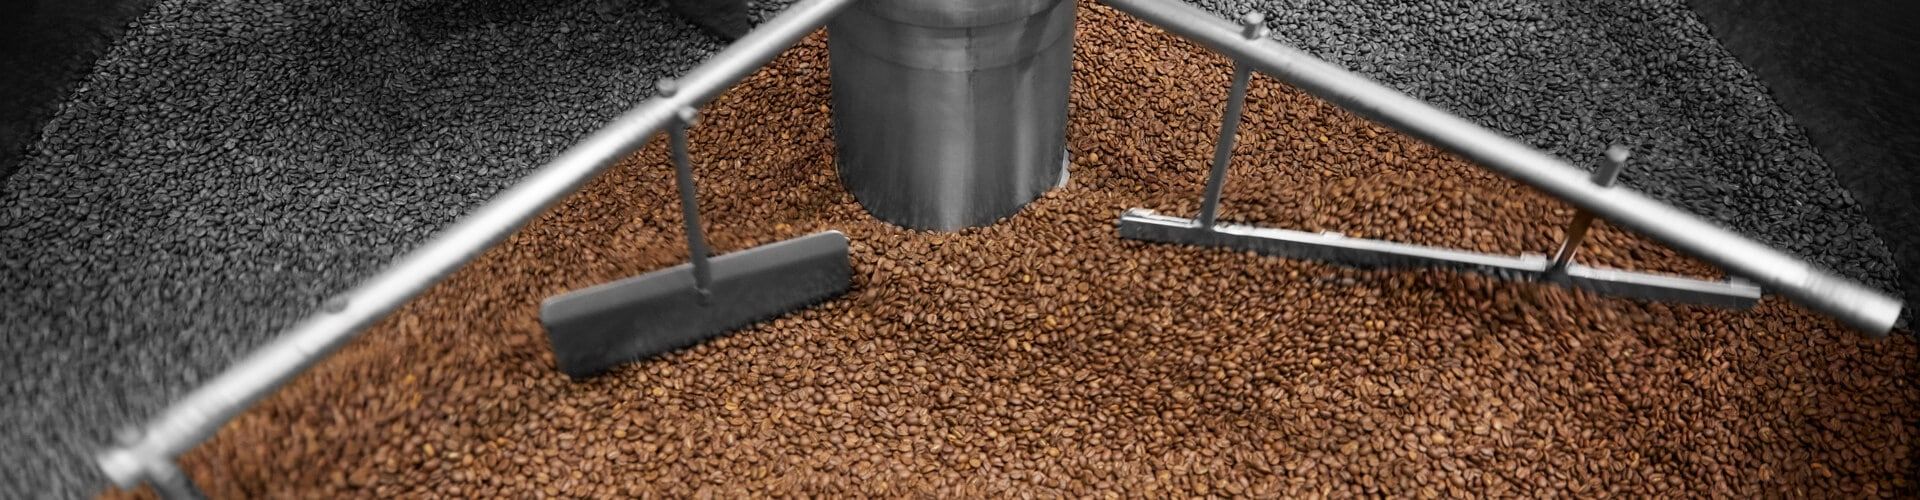 our-coffee-Prova-3-1920x500 Sustainability